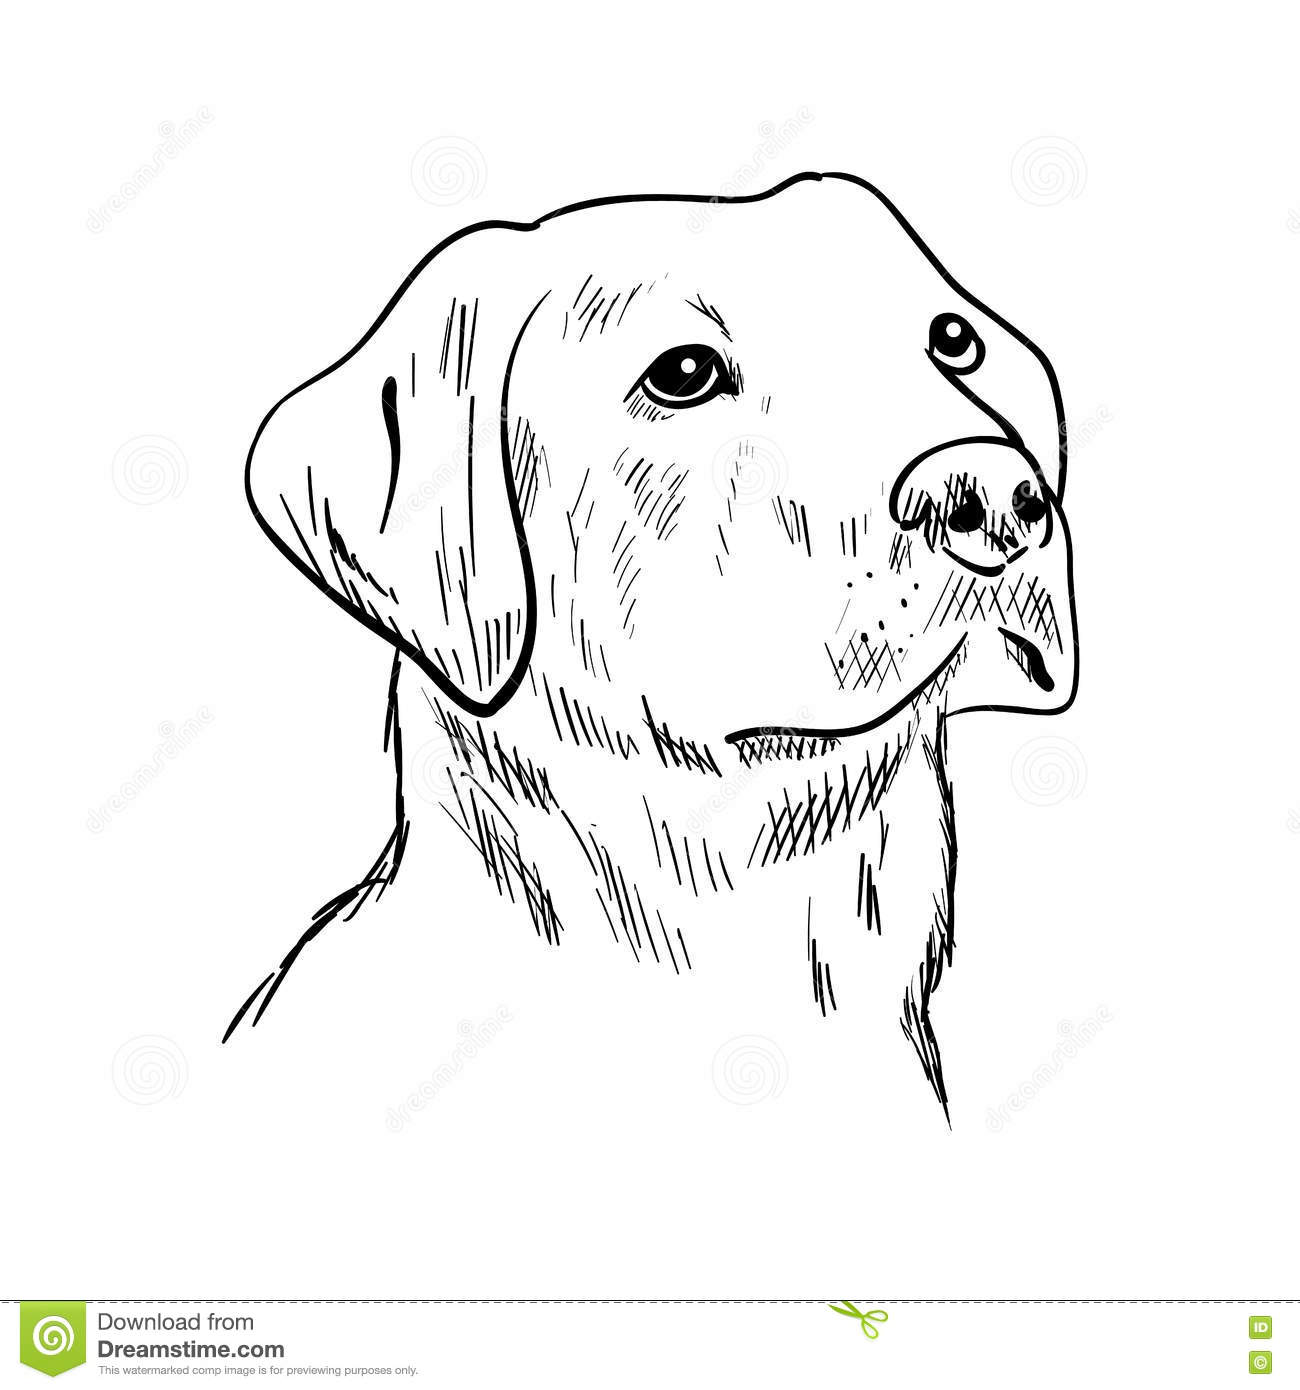 Yellow Lab stock illustration. Illustration of face, sign